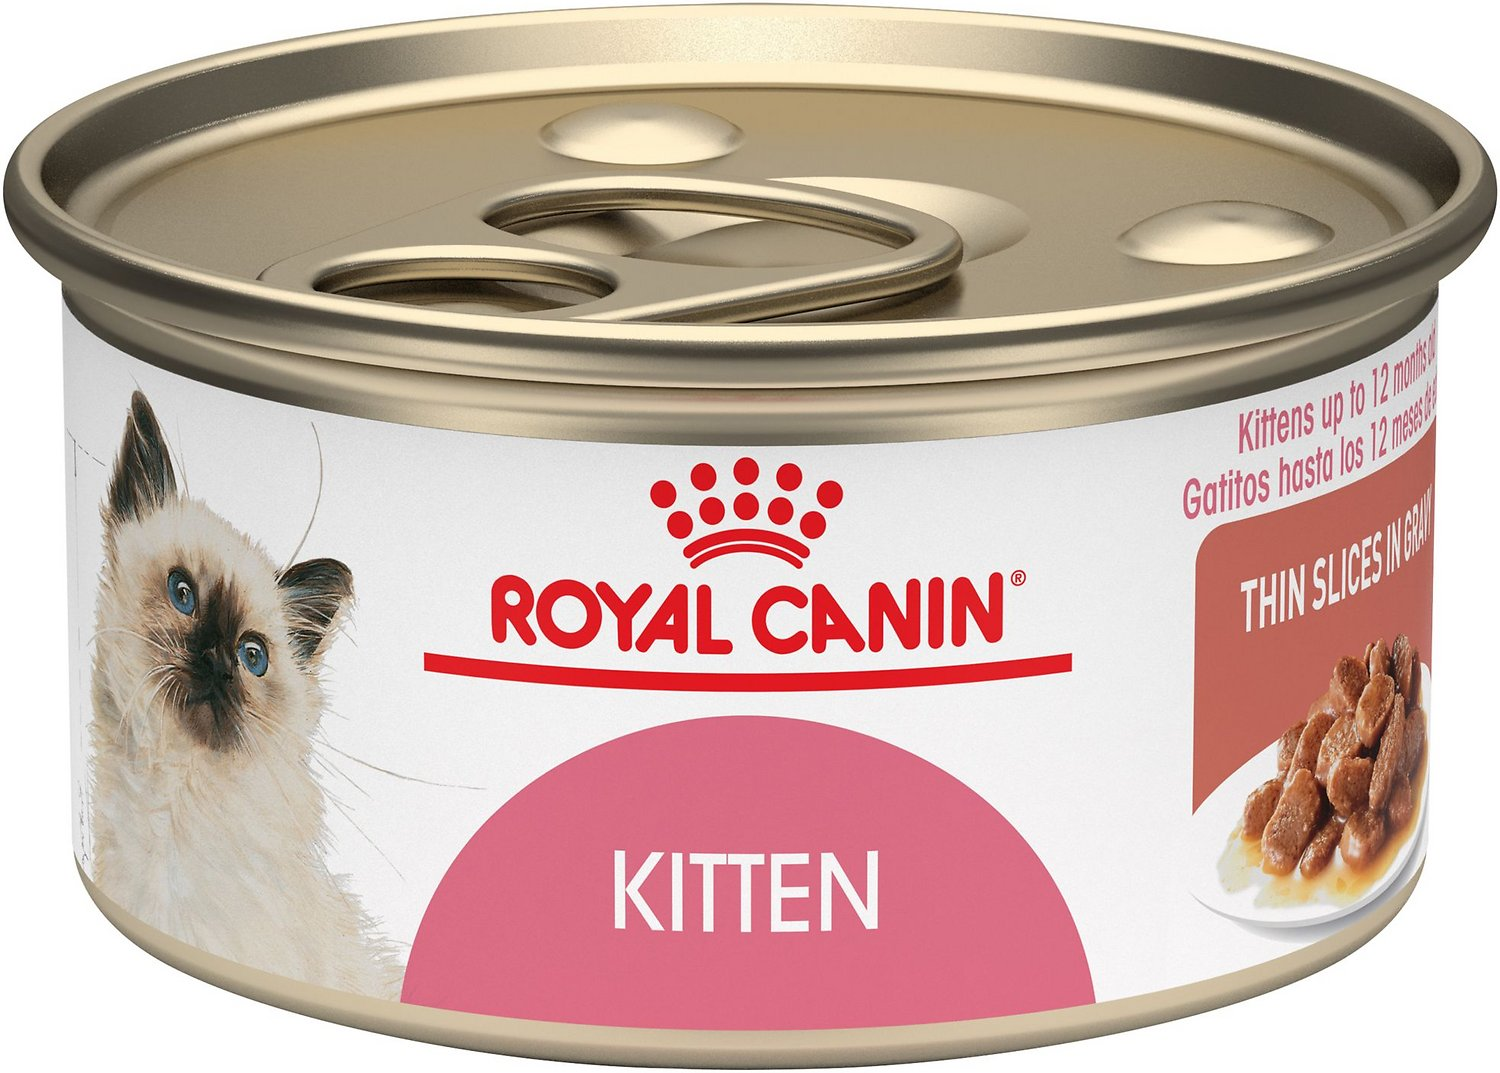 Royal Canin Kitten Instinctive Thin Slices in Gravy Canned Cat Food, 3-oz